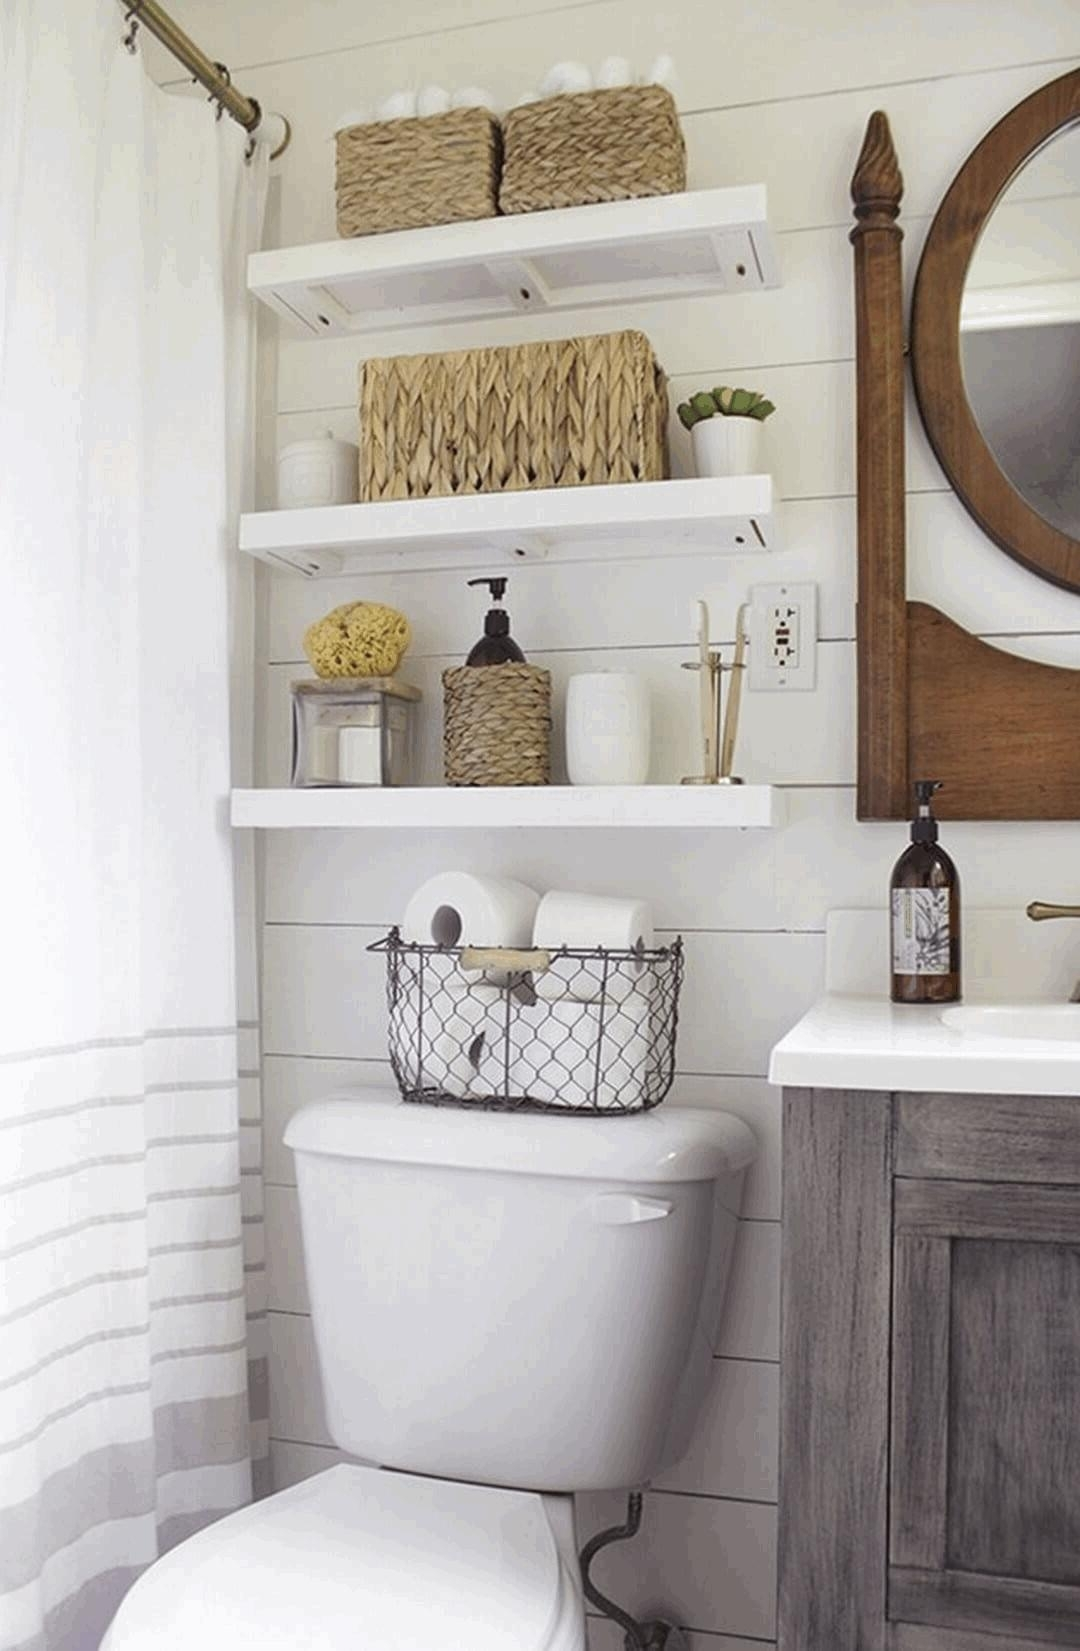 Above Toilet Storage Stainless Steel High Faucetexuberance White Regarding Most Recent Wall Accents Behind Toilet (View 3 of 15)